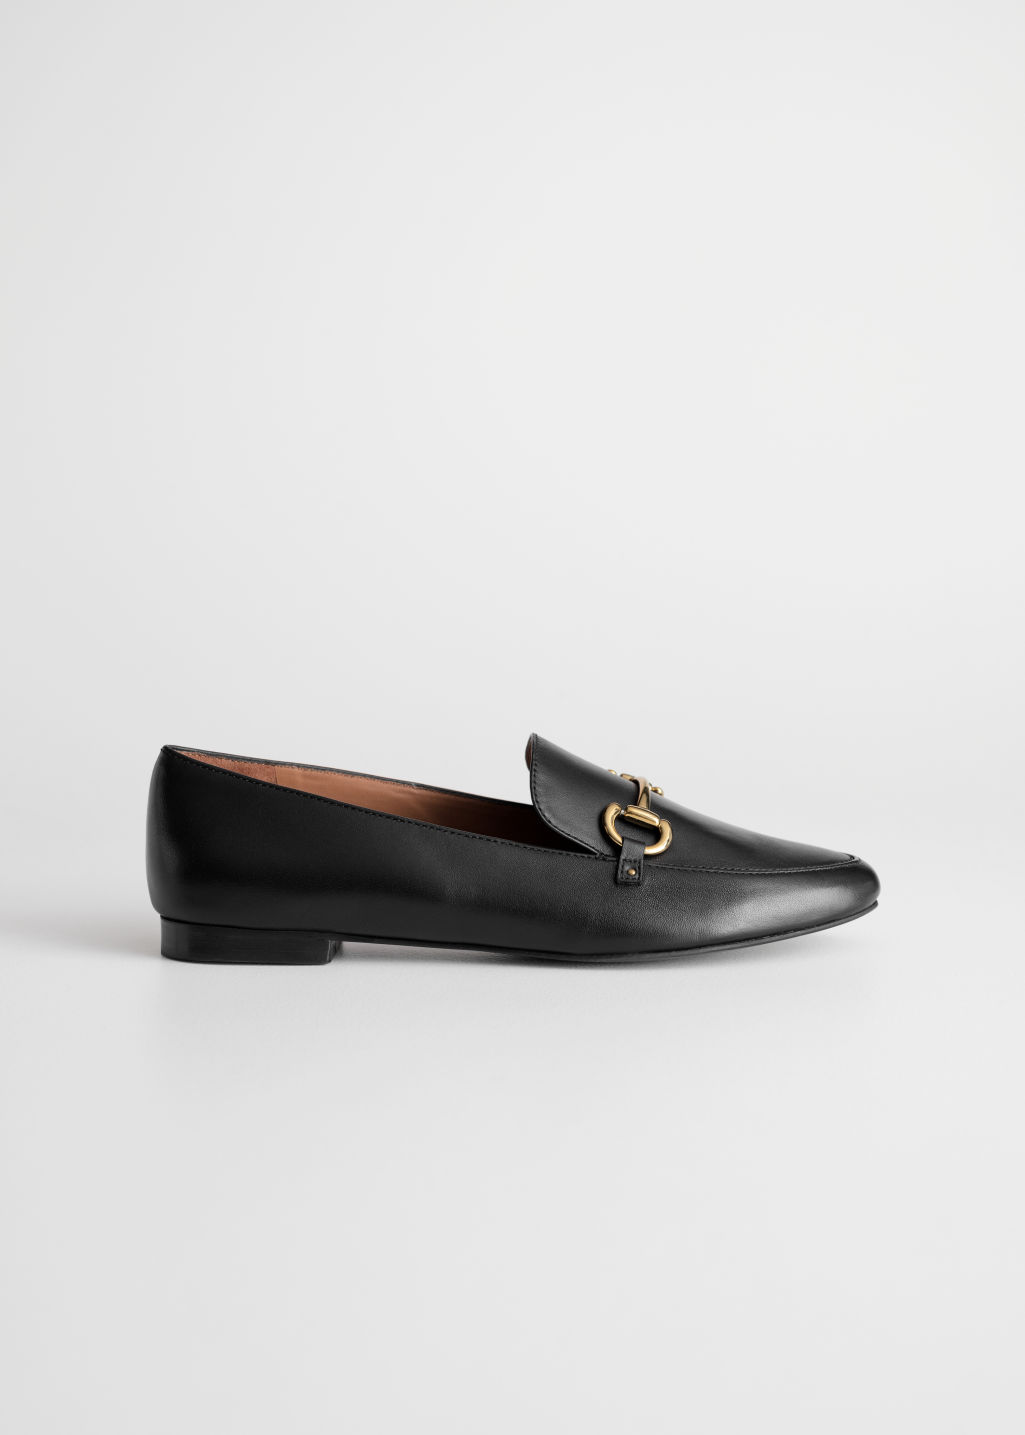 StillLife Left Image of Stories Equestrian Buckle Loafers in Black